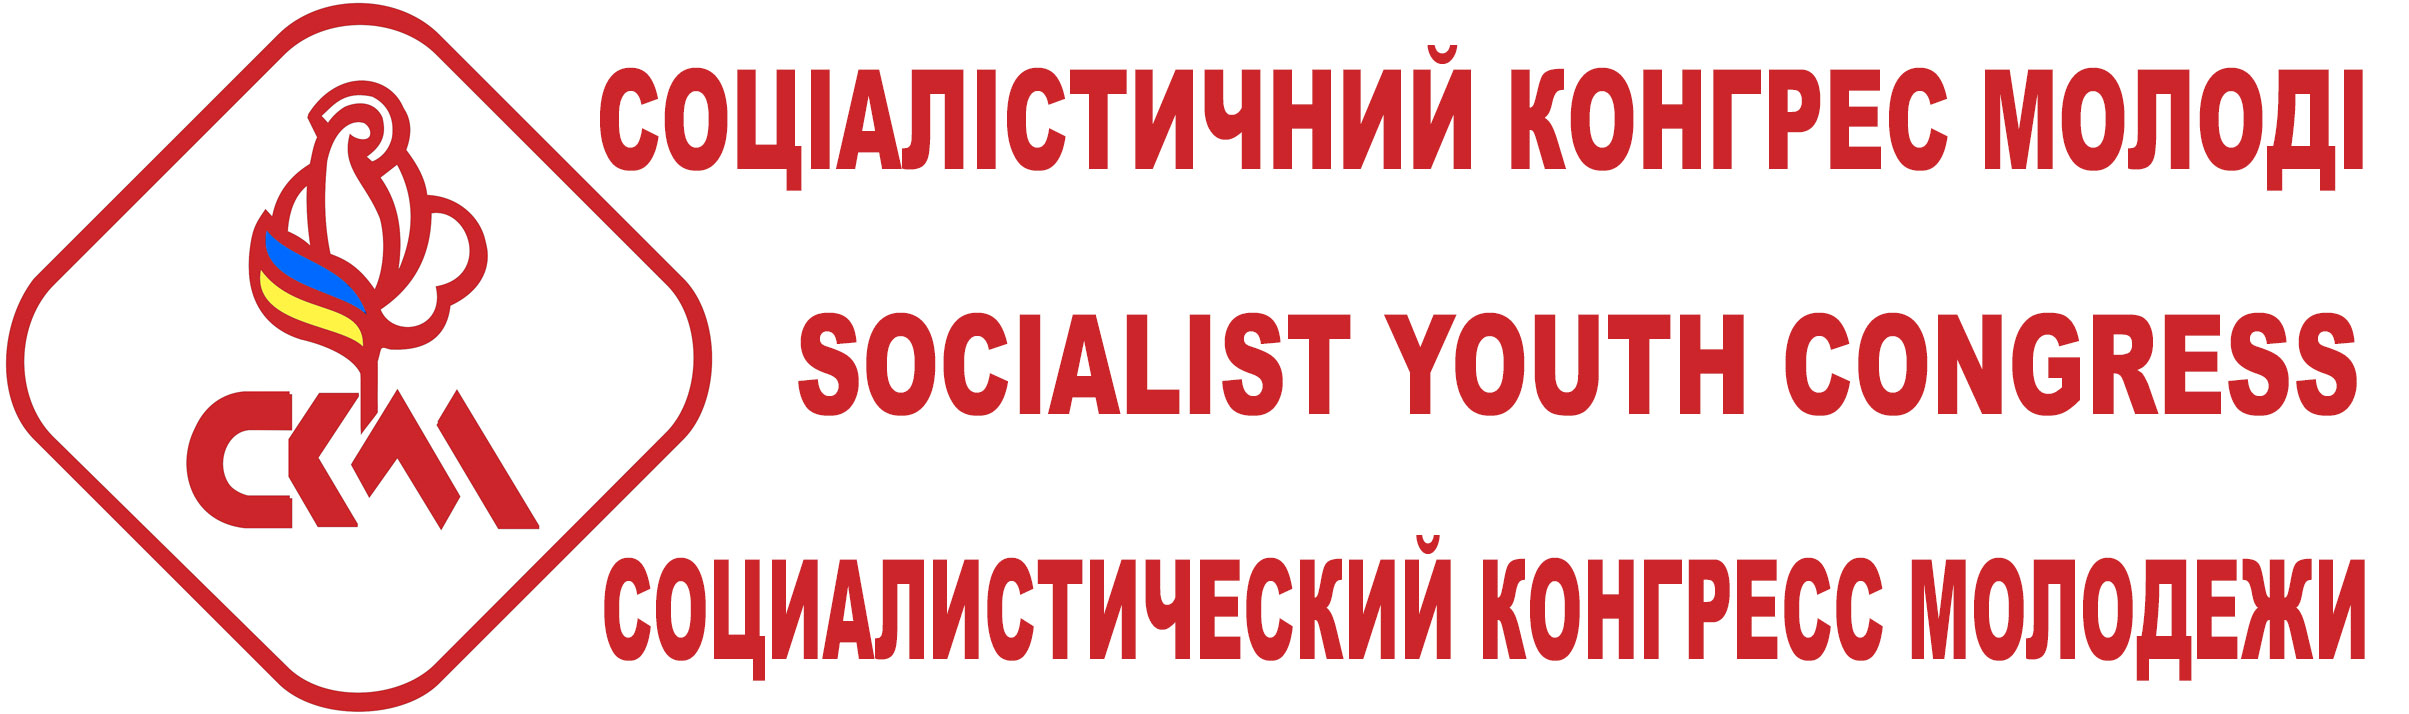 Socialist Youth Congress